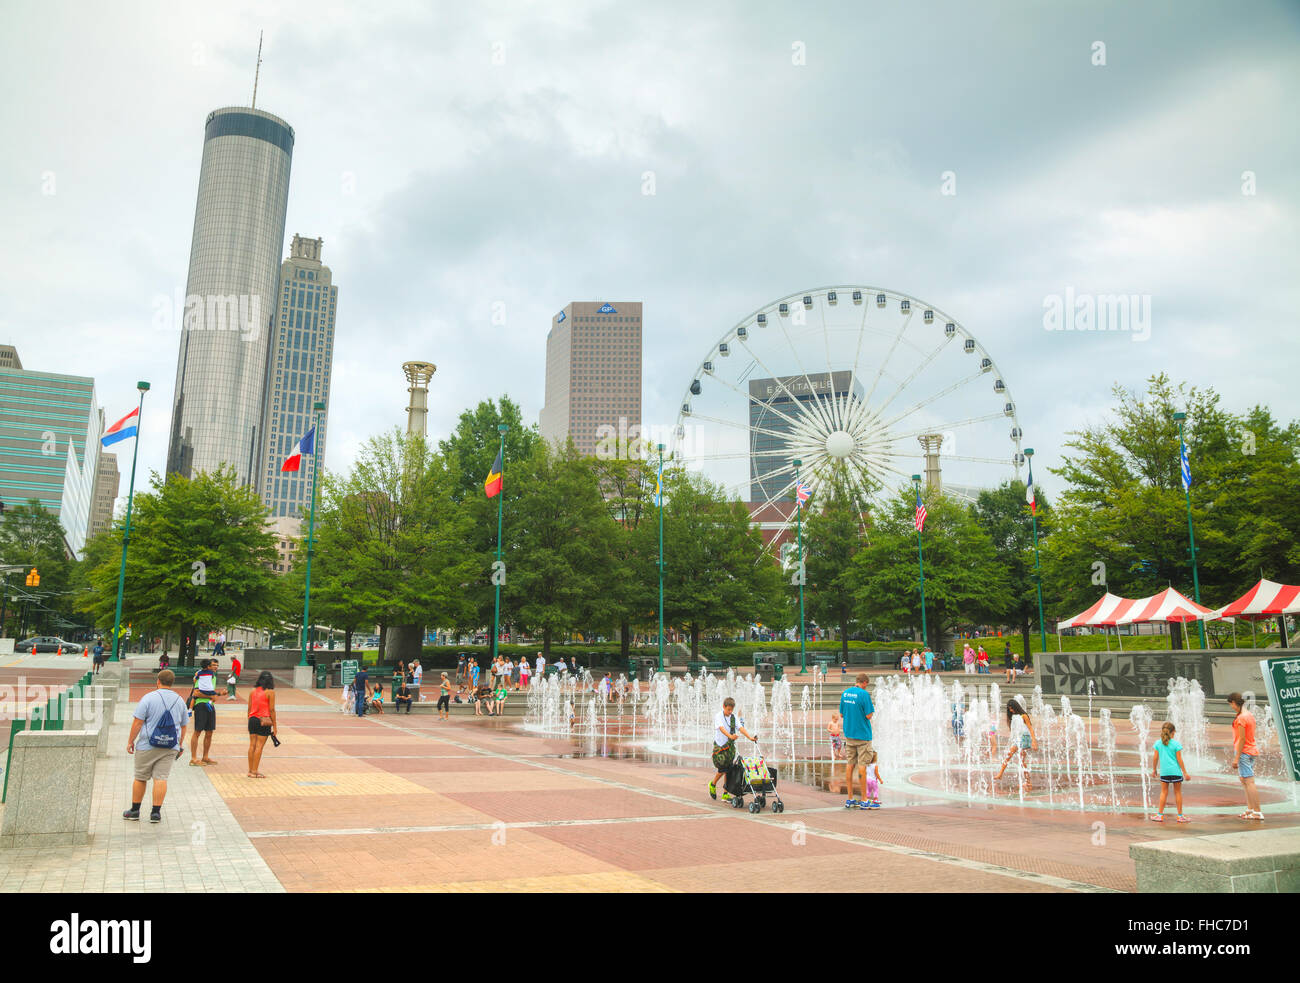 ATLANTA - AUGUST 29: Centennial Olympic park with people on August 29, 2015 in Atlanta, GA. - Stock Image